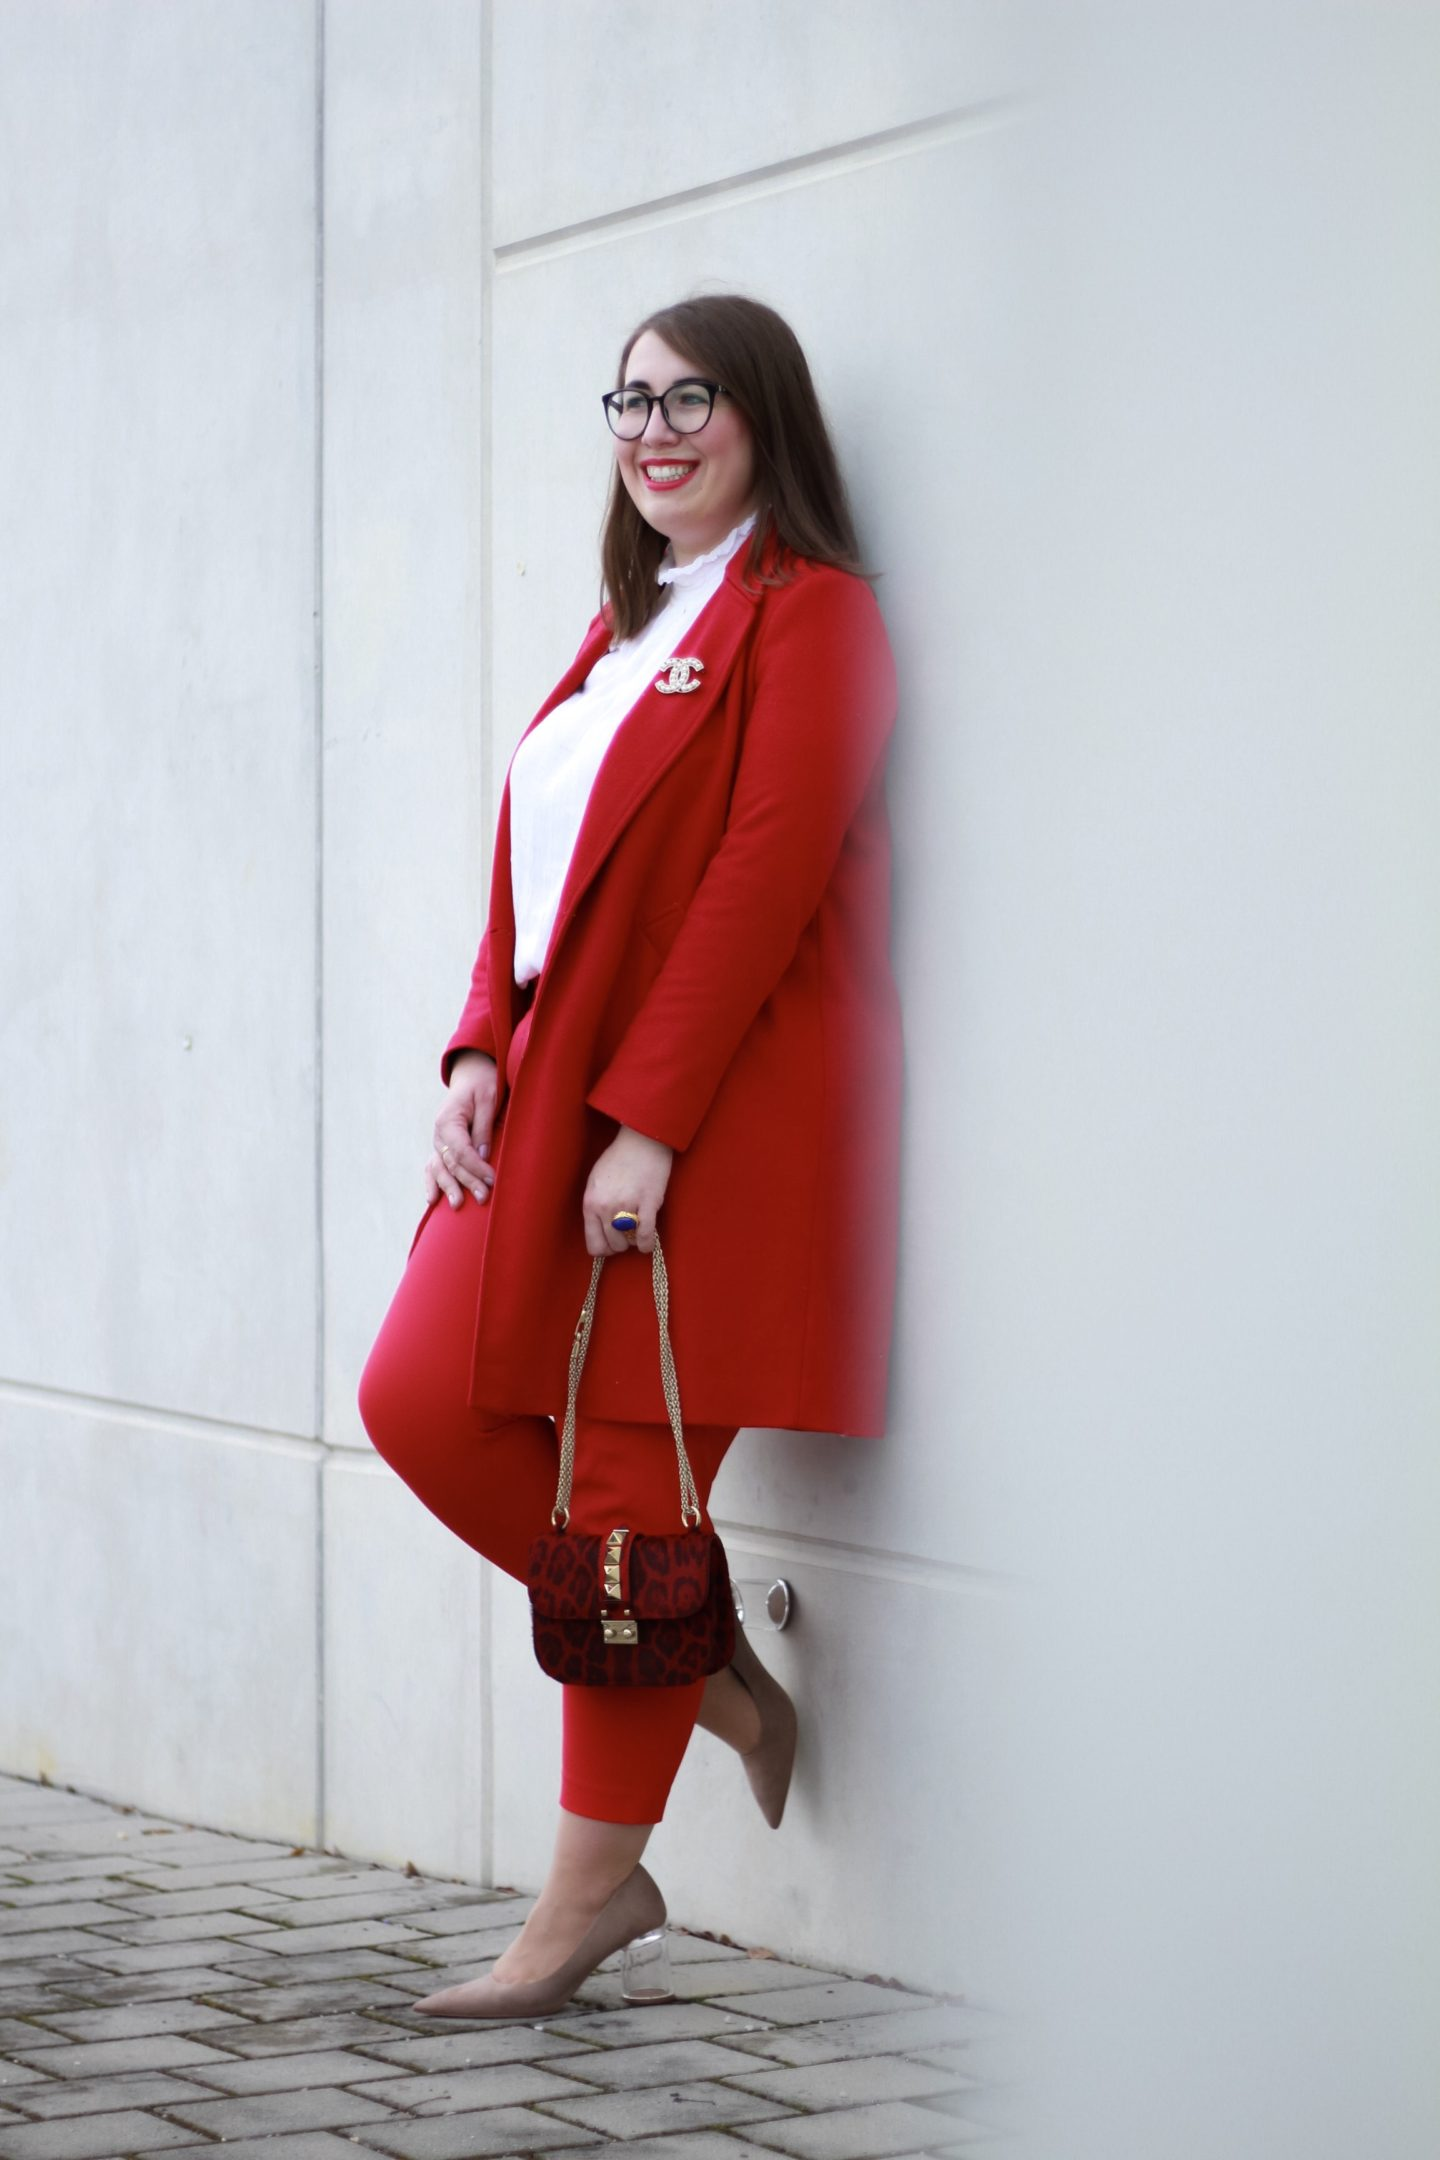 Be-my-Valentine-All-red-Outfit-Valentinstag-MIss-Suzie-Loves-Susanne-Heidebach-Allover-Rot